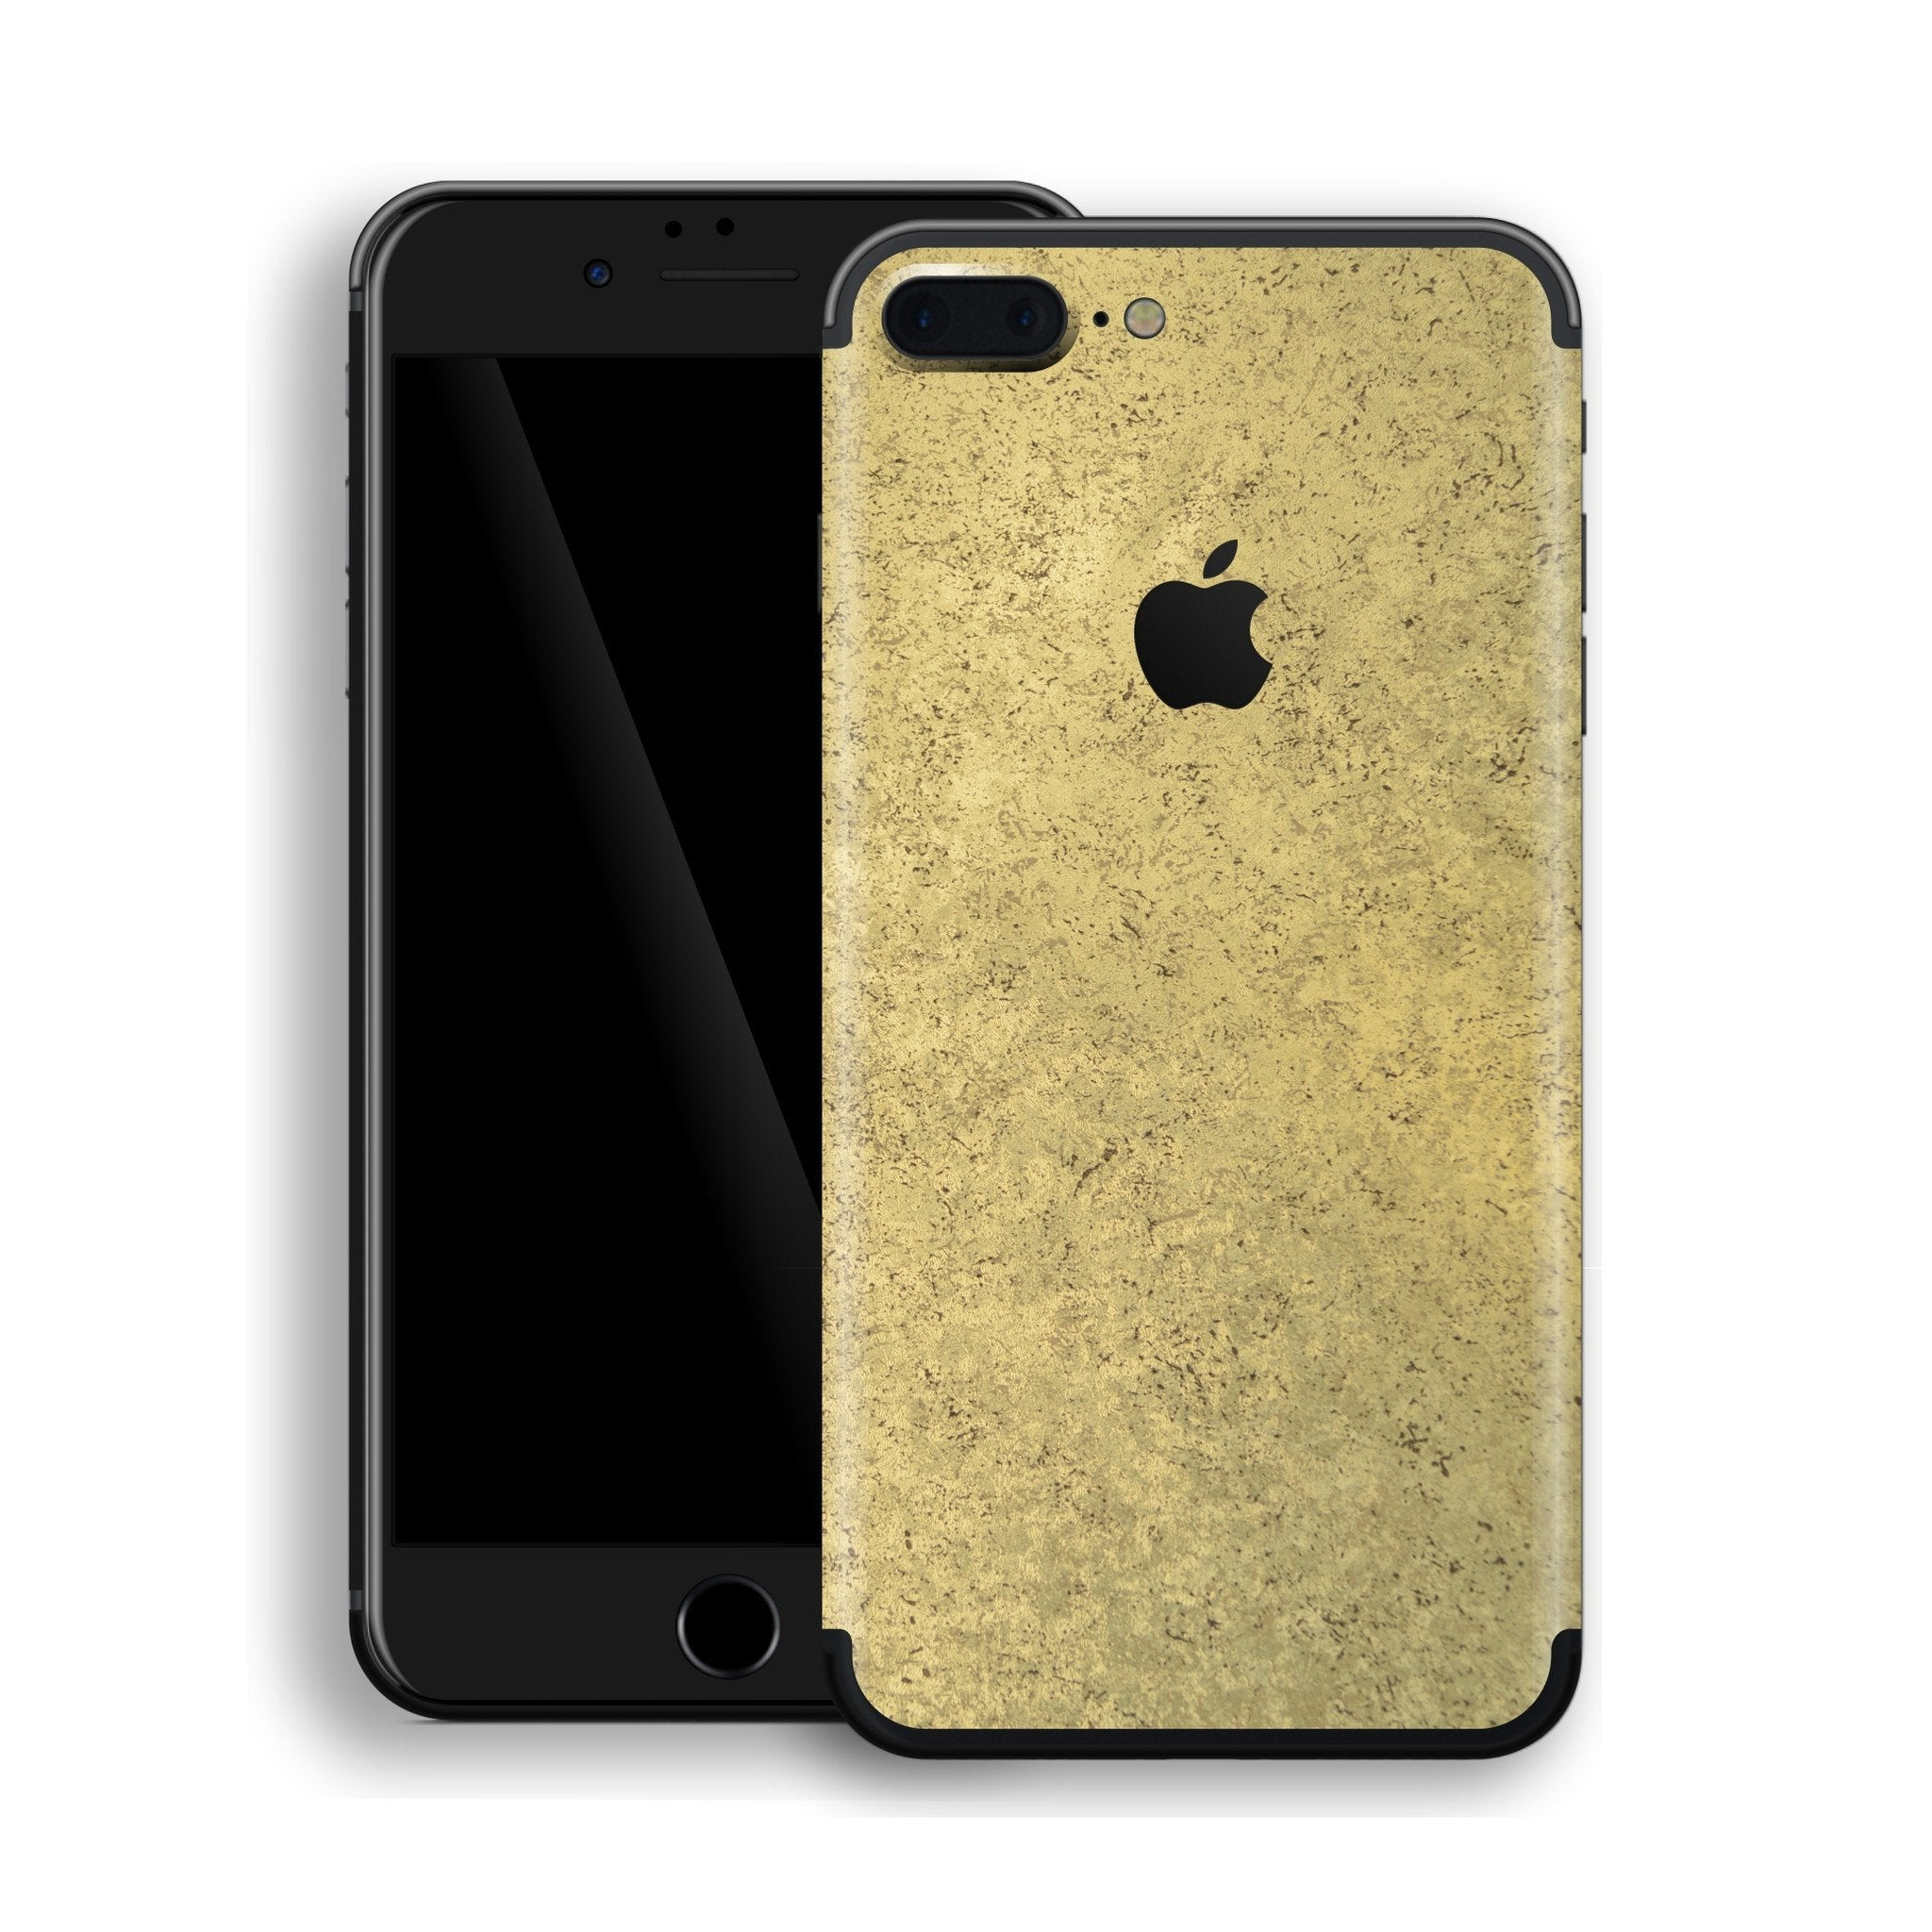 iPhone 8 Plus Luxuria Egyptian Gold and Black Matt Skin Wrap Decal Protector | EasySkinz